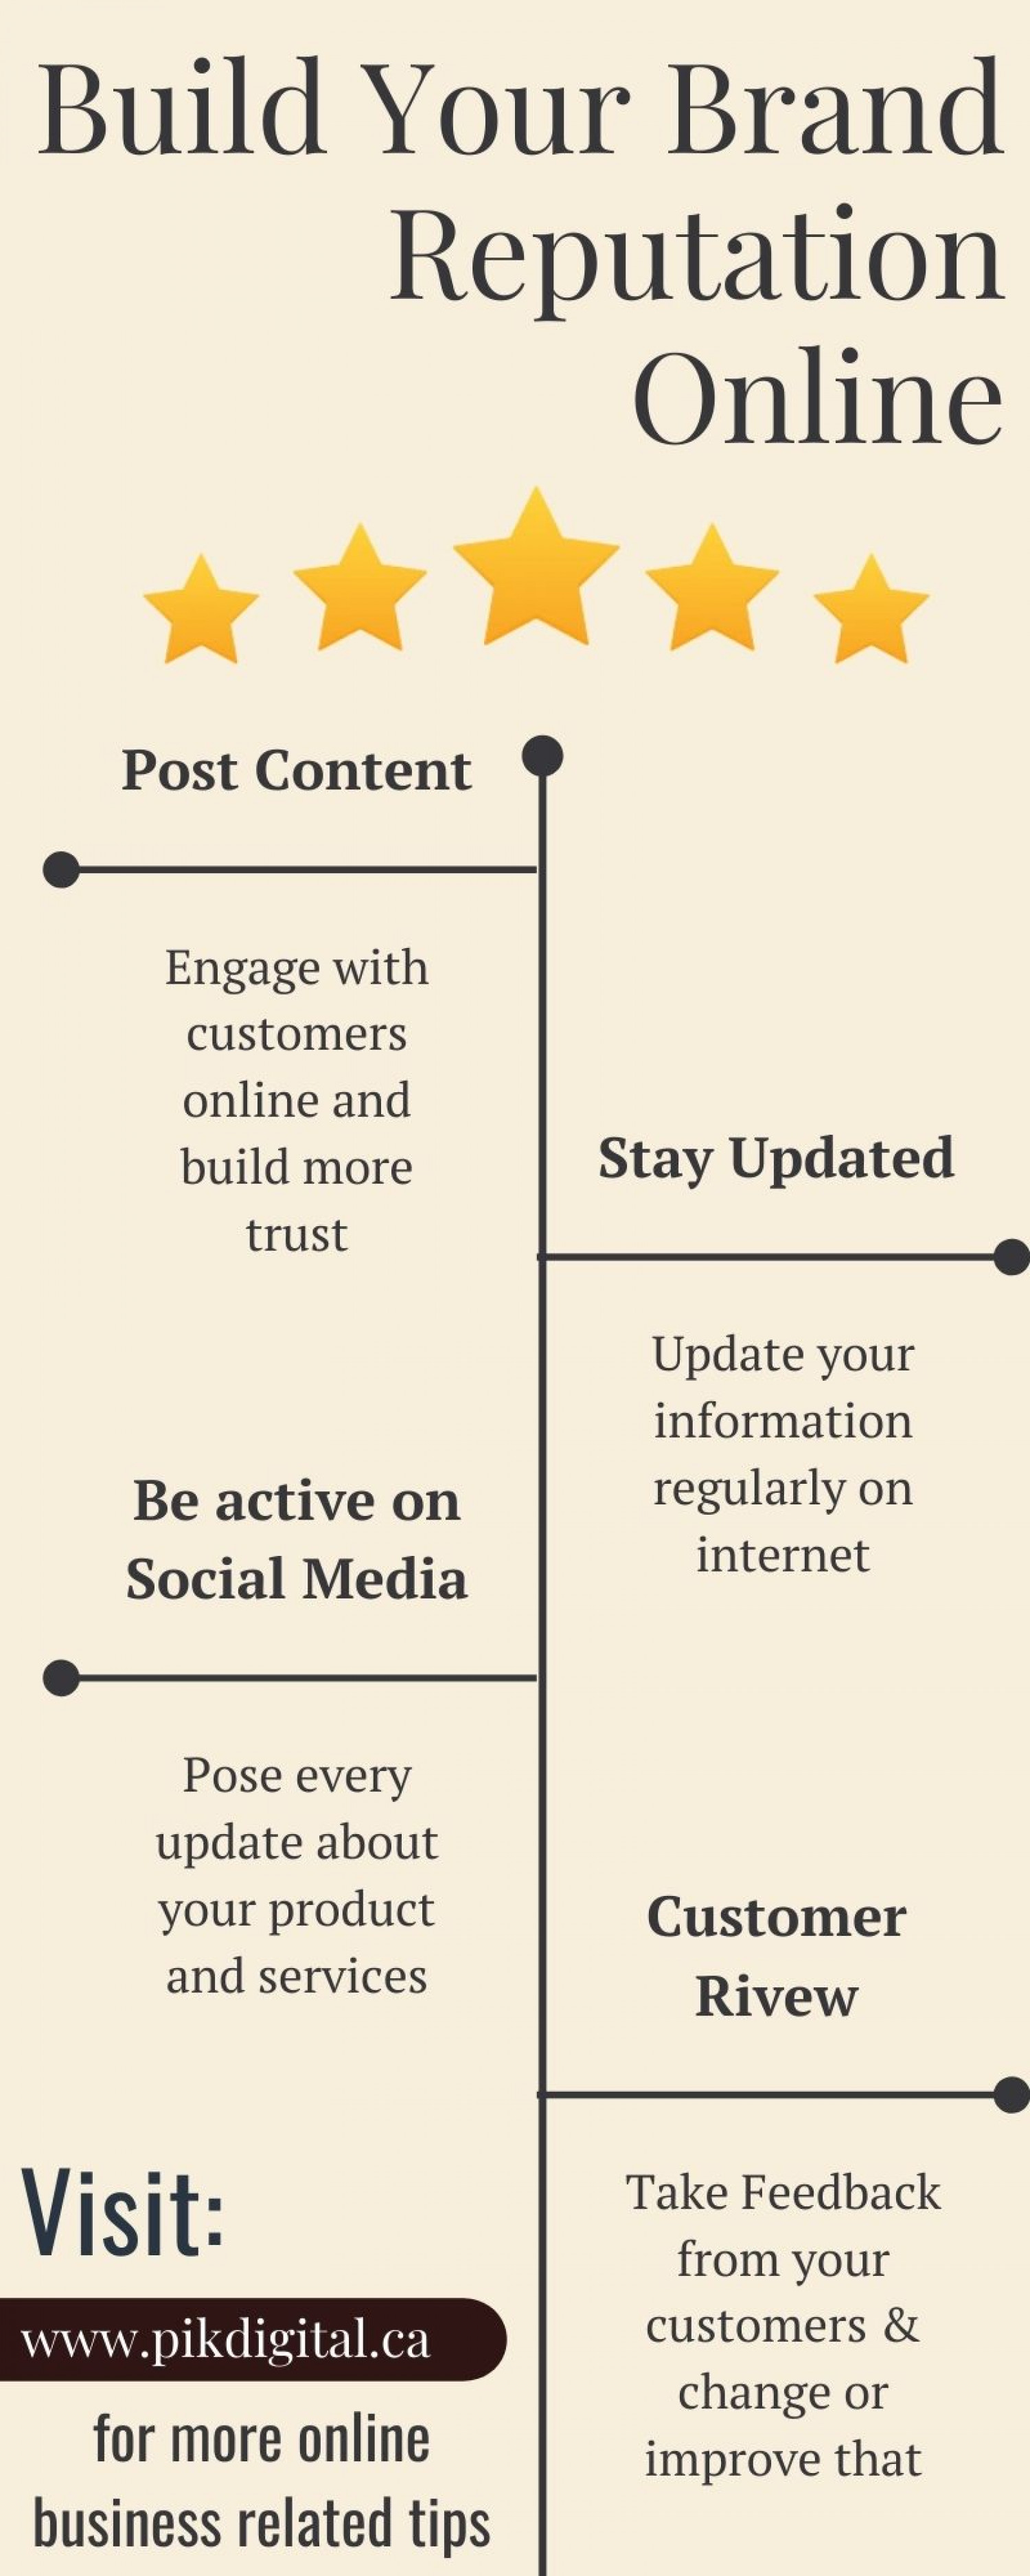 How to Build Your Brand Reputation Online? Infographic